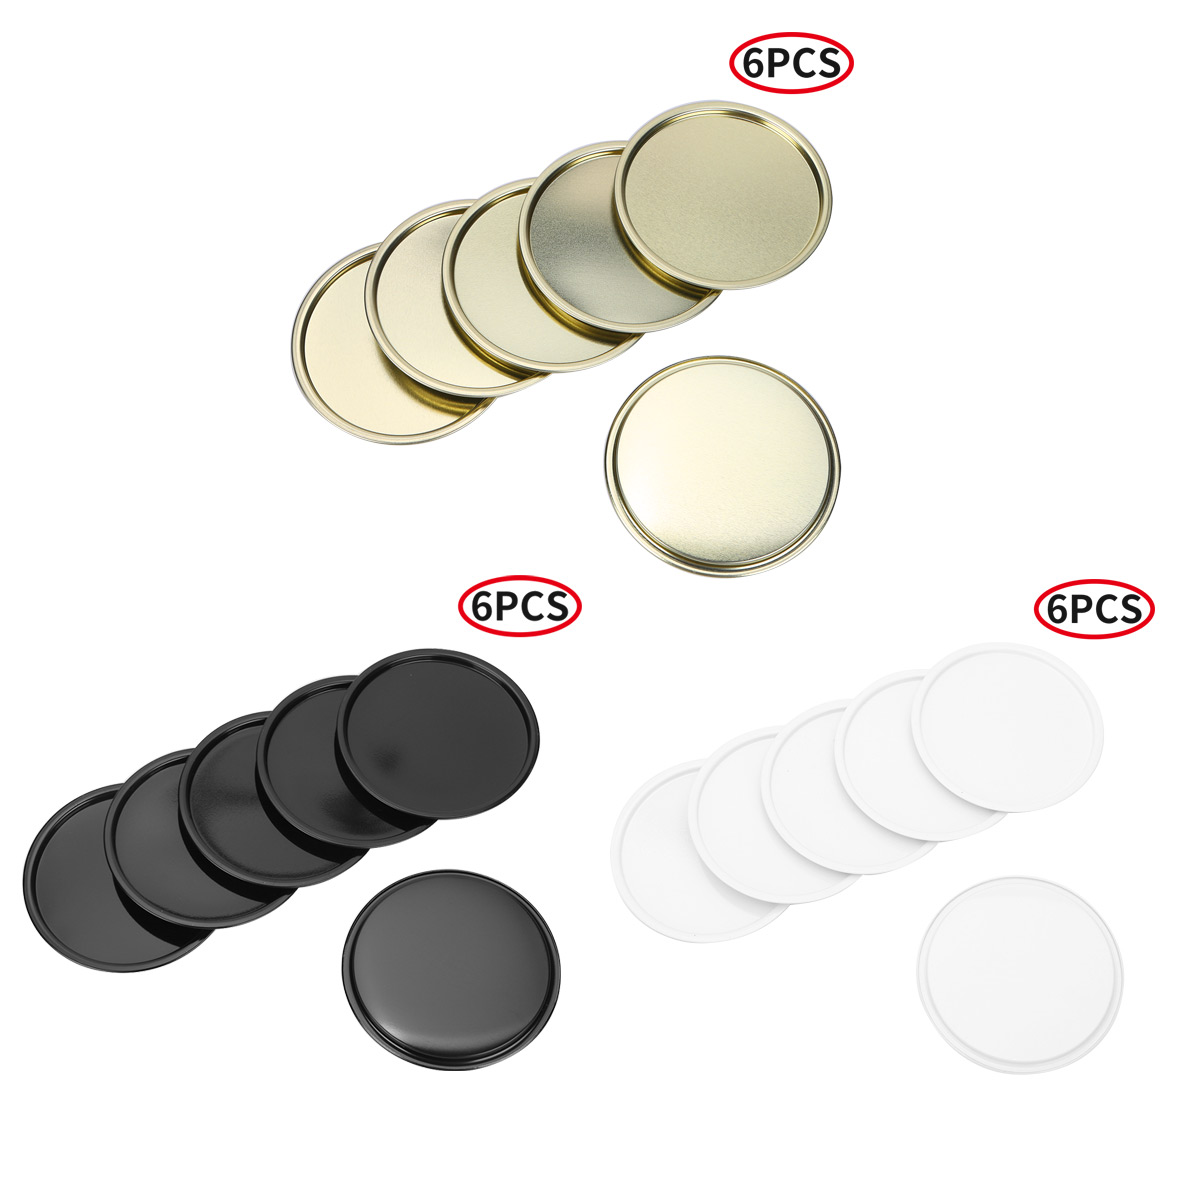 6Pcs Candle Holder Plates for Romence Dinner Night Wedding Spa Home Party Decor Round Marson Jar Lids Metal Candle Holder Plates